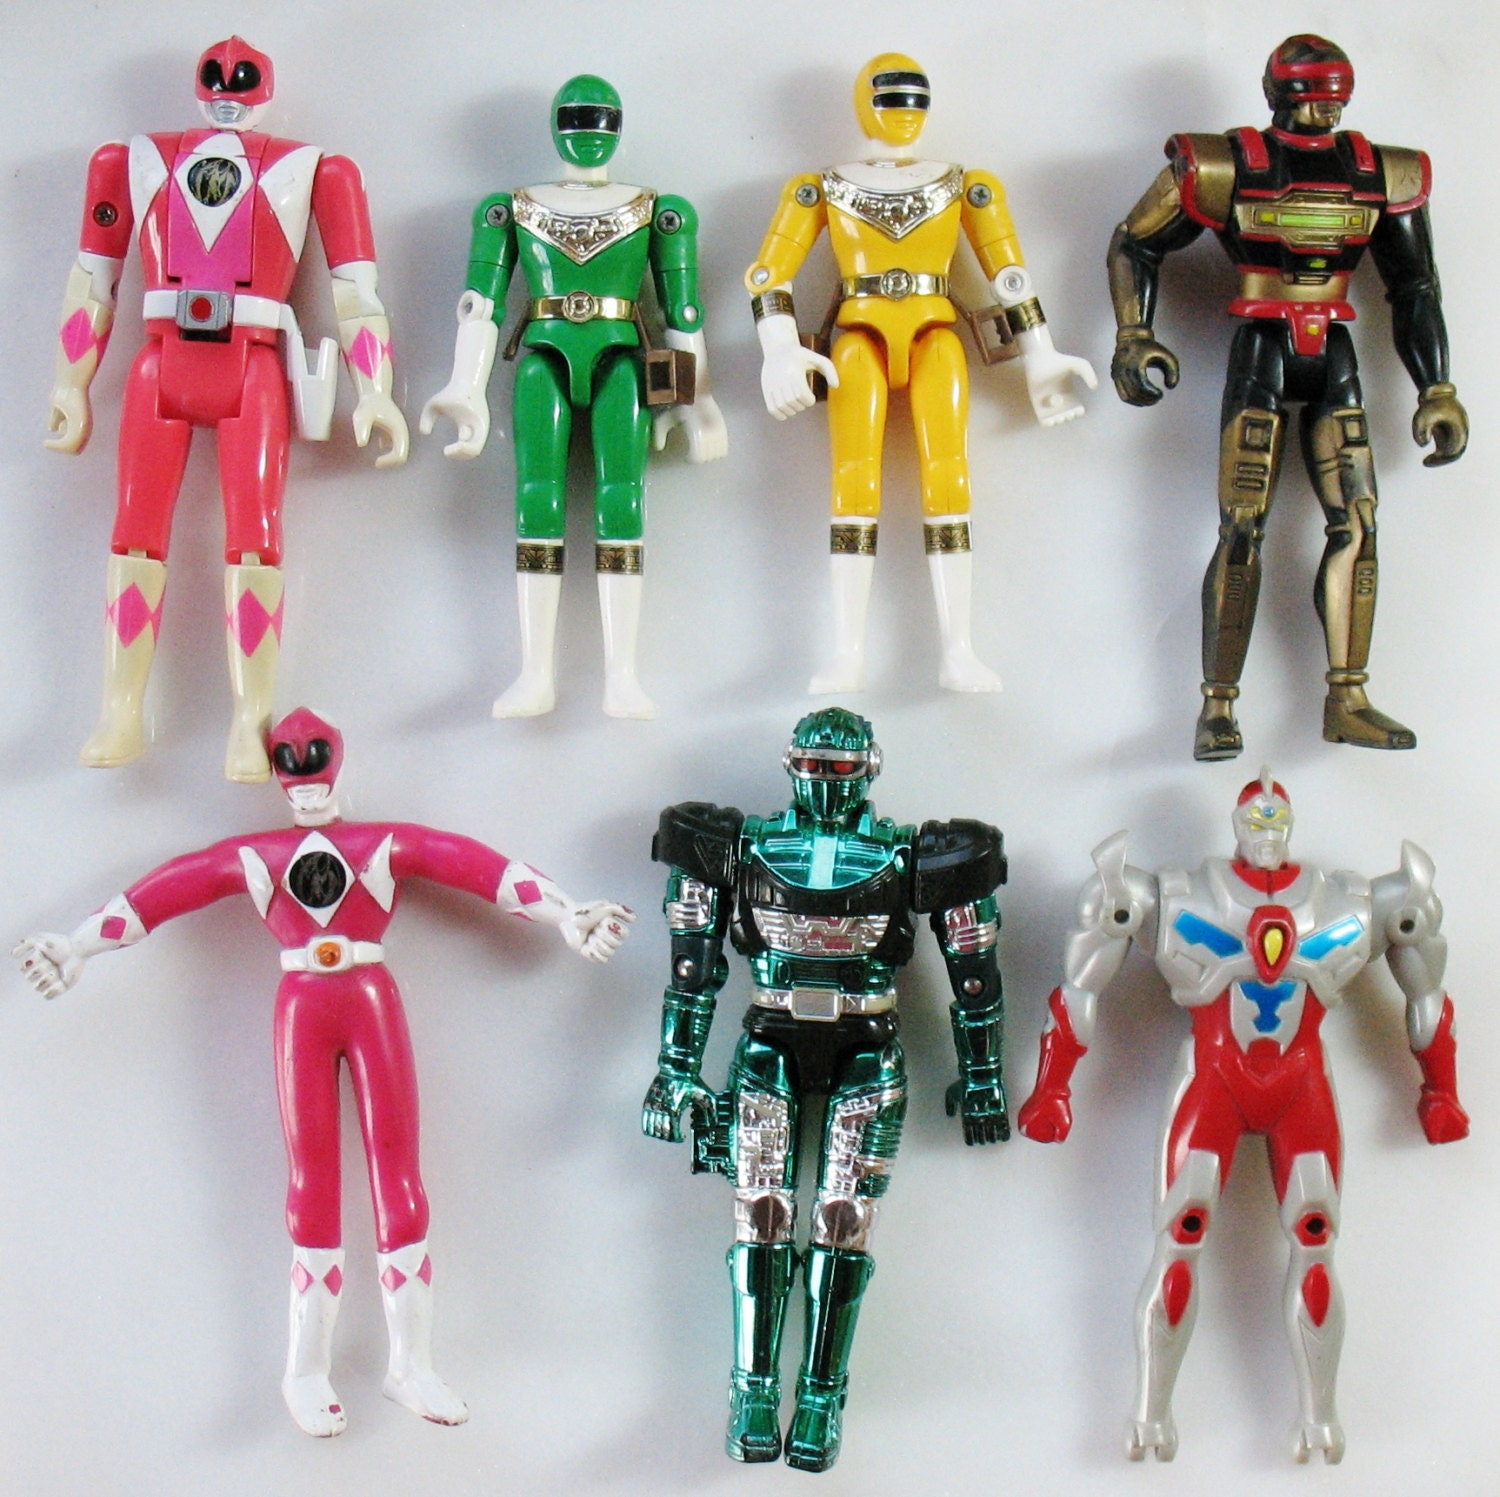 Best Power Ranger Toys And Action Figures : Power rangers toys deals on blocks